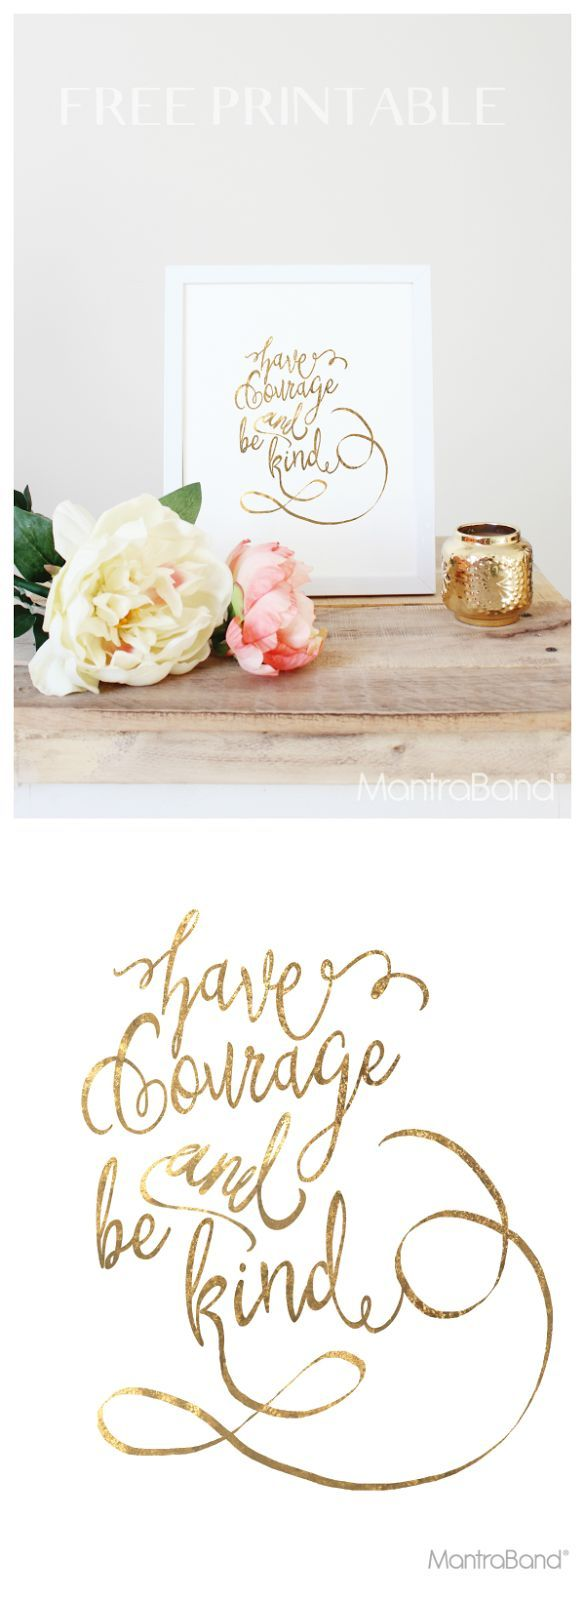 FREE printable wall art pieces! 10 to choose from! Free